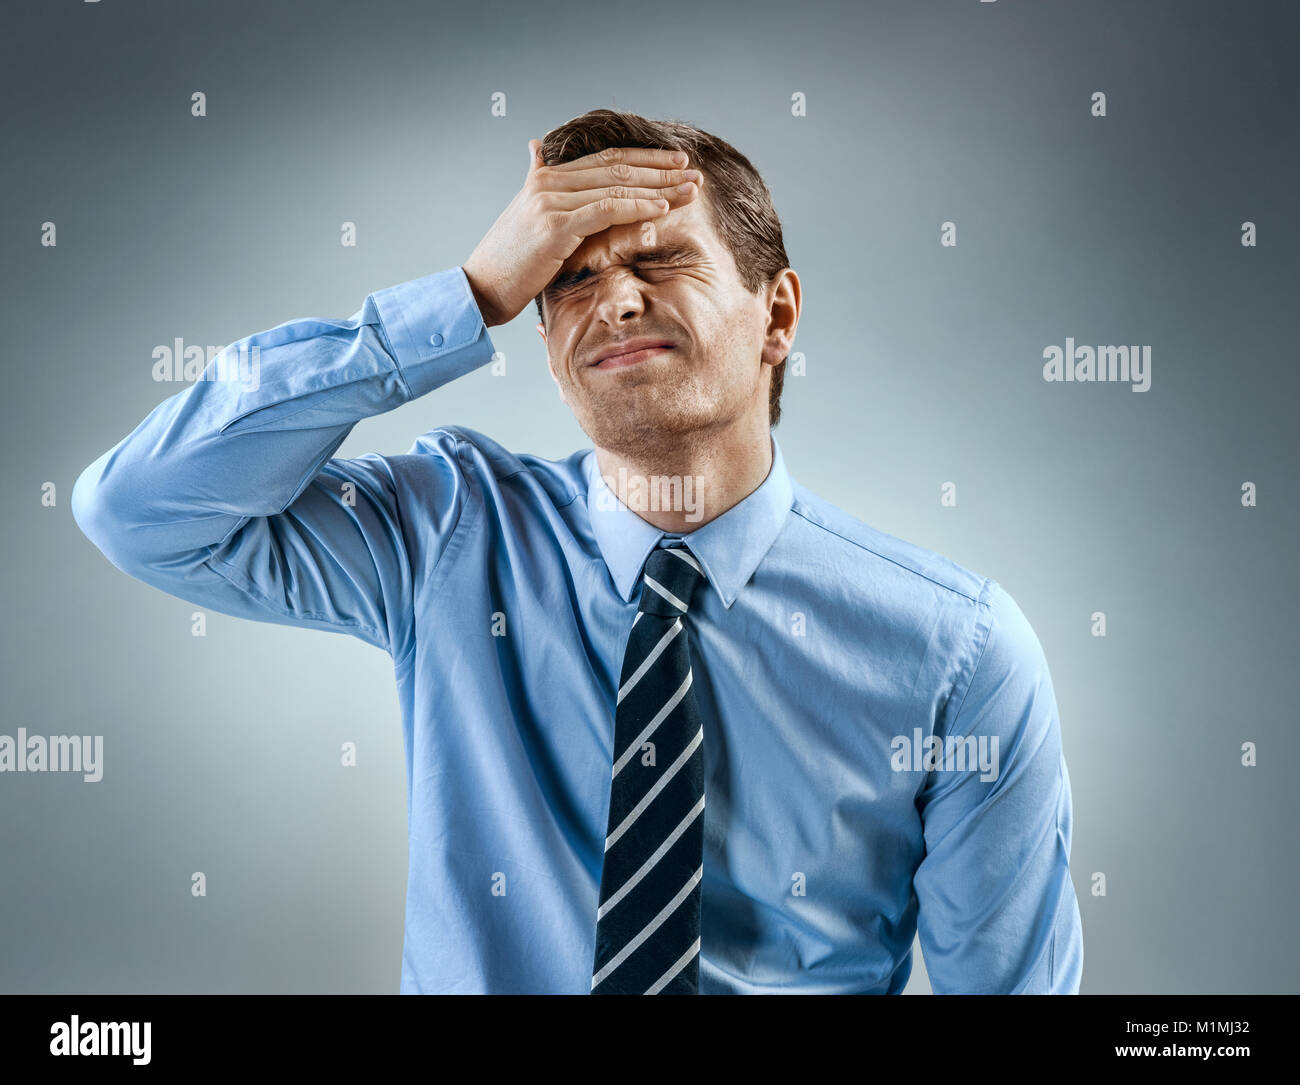 Man holding his head in pain. Photo of man in shirt and tie grimacing in pain on gray background. Medical concept - Stock Image